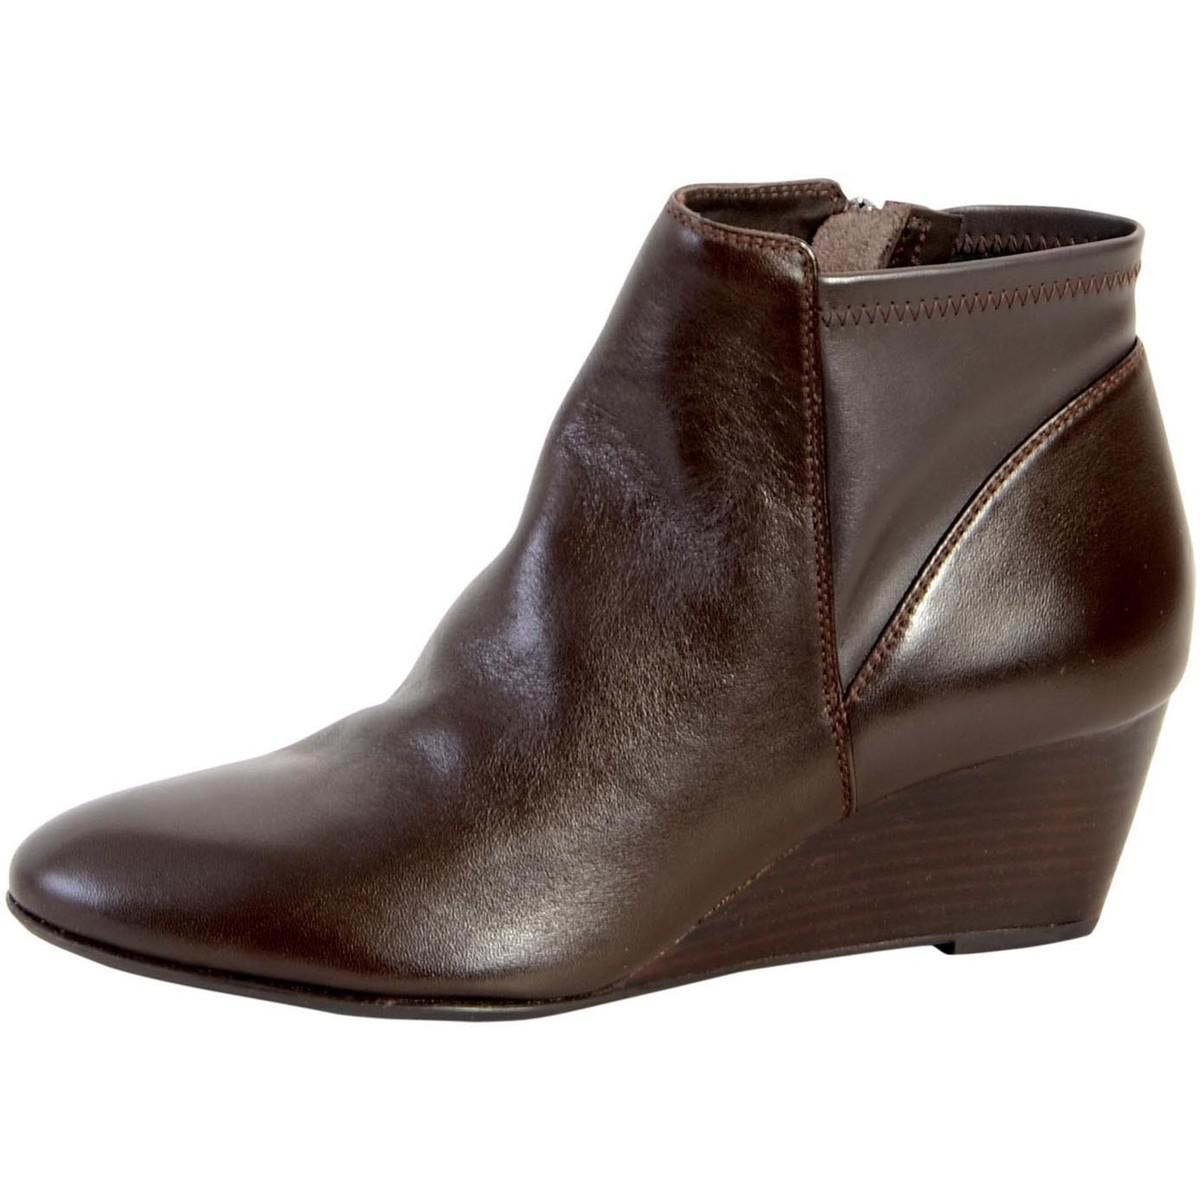 lyst geox bottine d venere has d64p8a 085kb c6009 coffee women 39 s low ankle boots in brown in brown. Black Bedroom Furniture Sets. Home Design Ideas